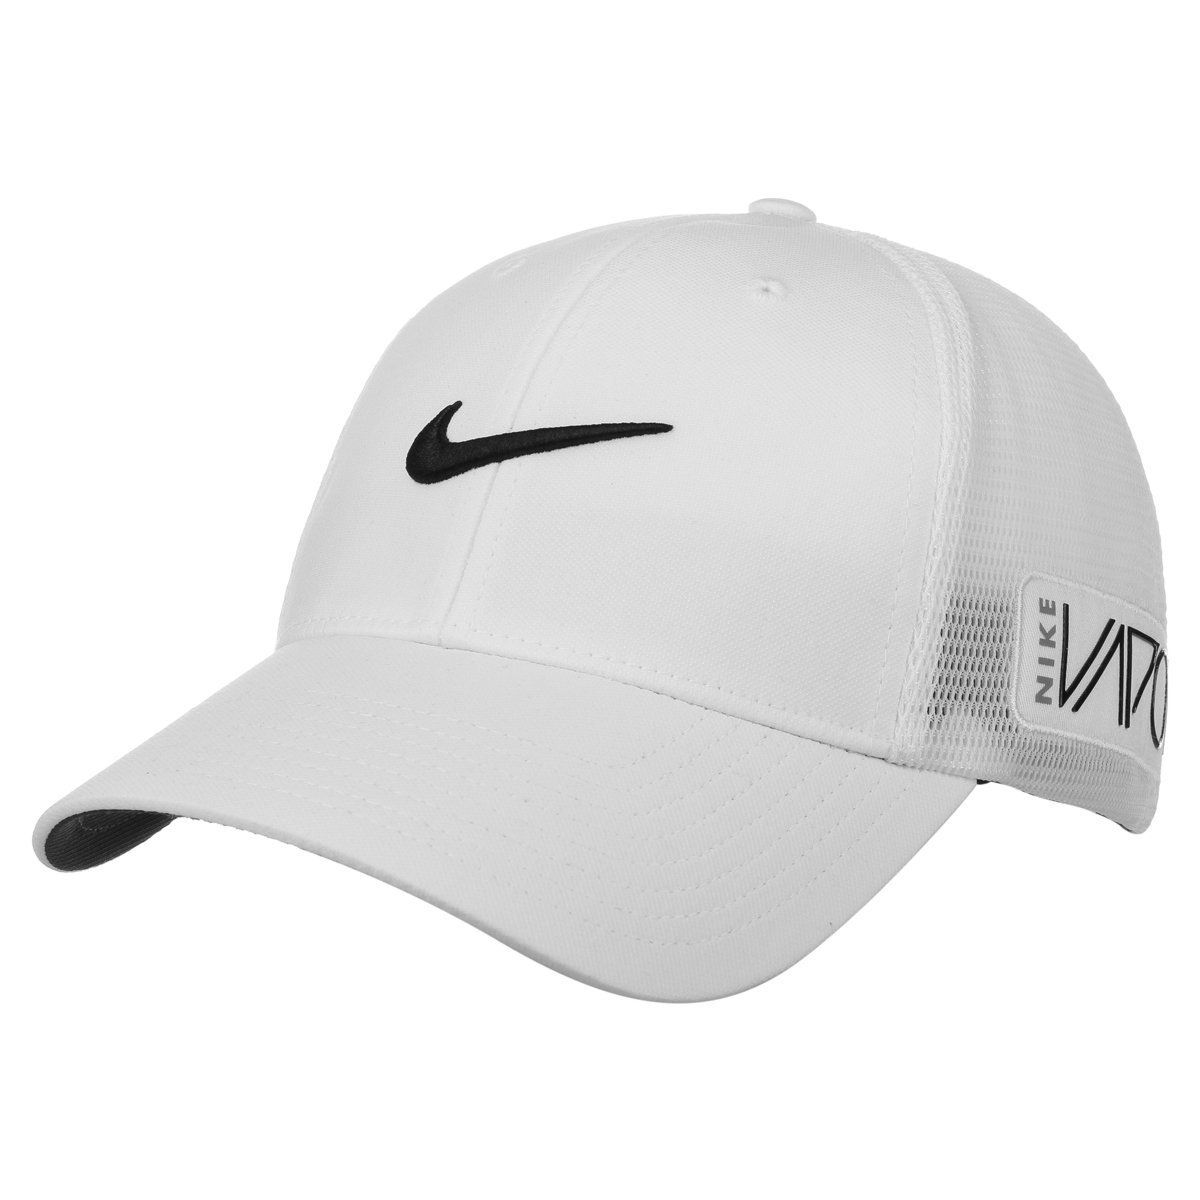 b331ab5f941 Get Quotations · NEW Nike Tour Legacy Mesh RZN Vapor White Fitted M L Hat  Cap